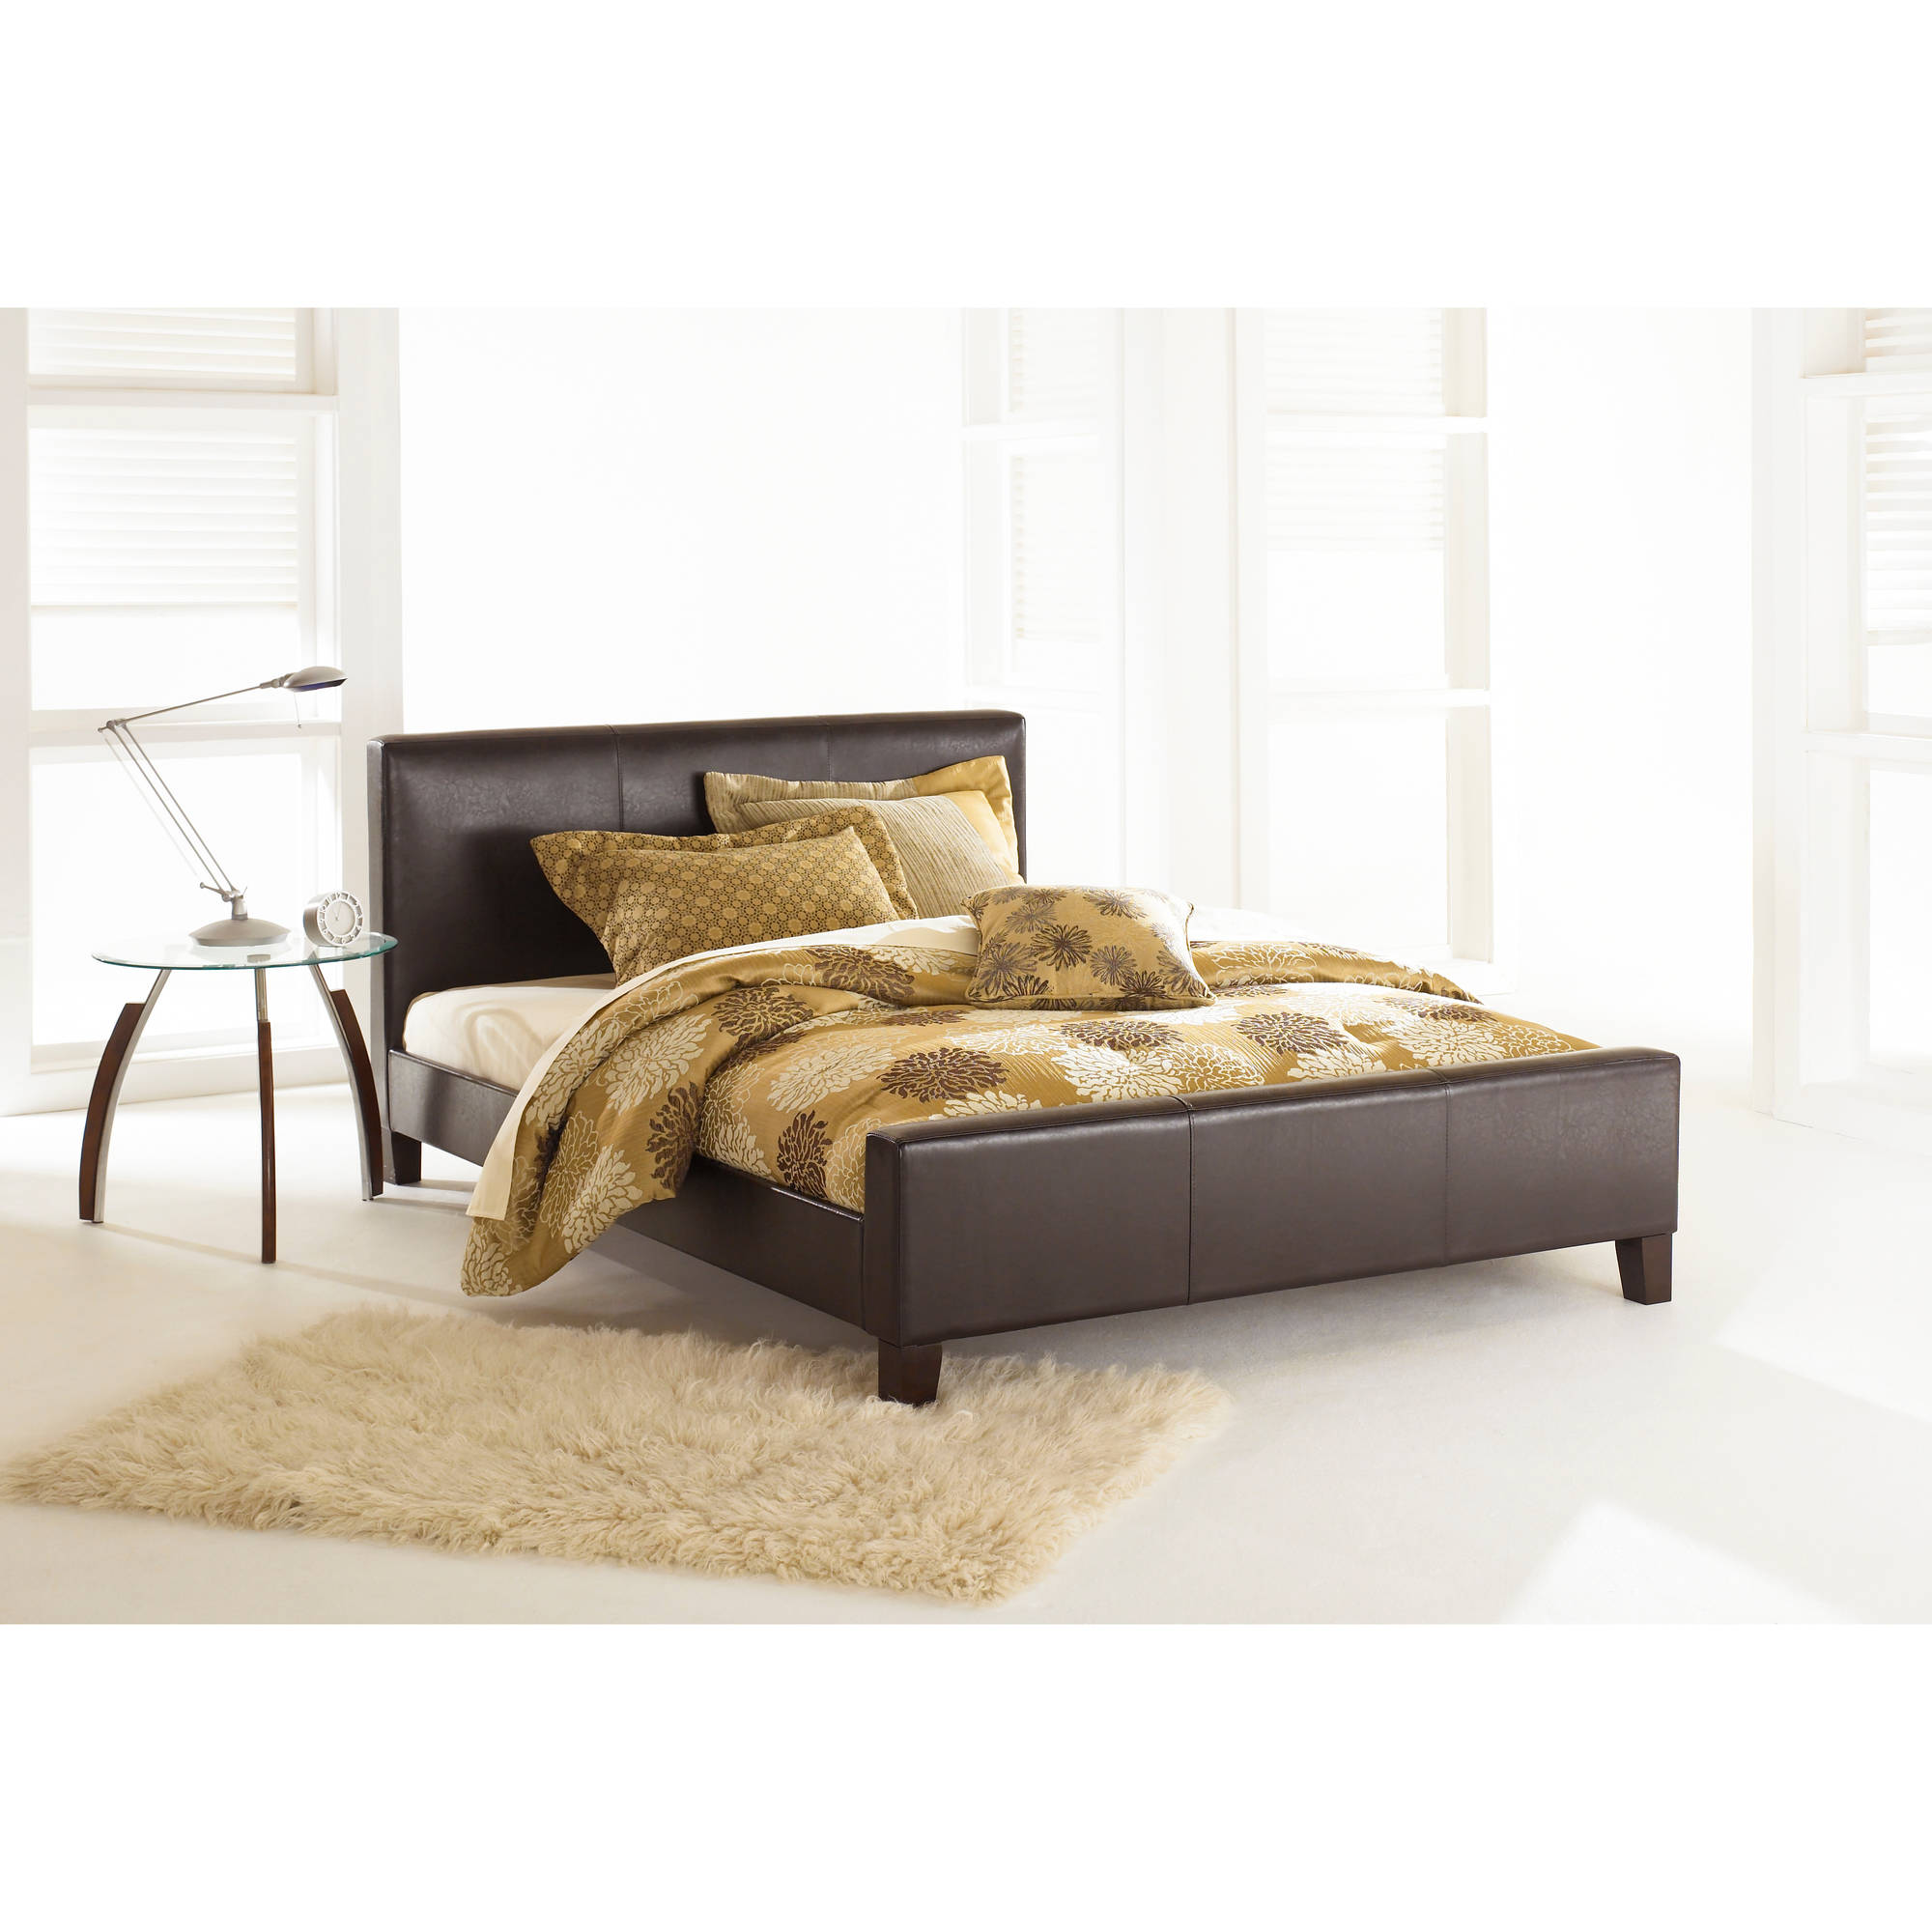 Leggett & Platt Fashion Bed Group Euro King Bed Headboard and Slats, Sable